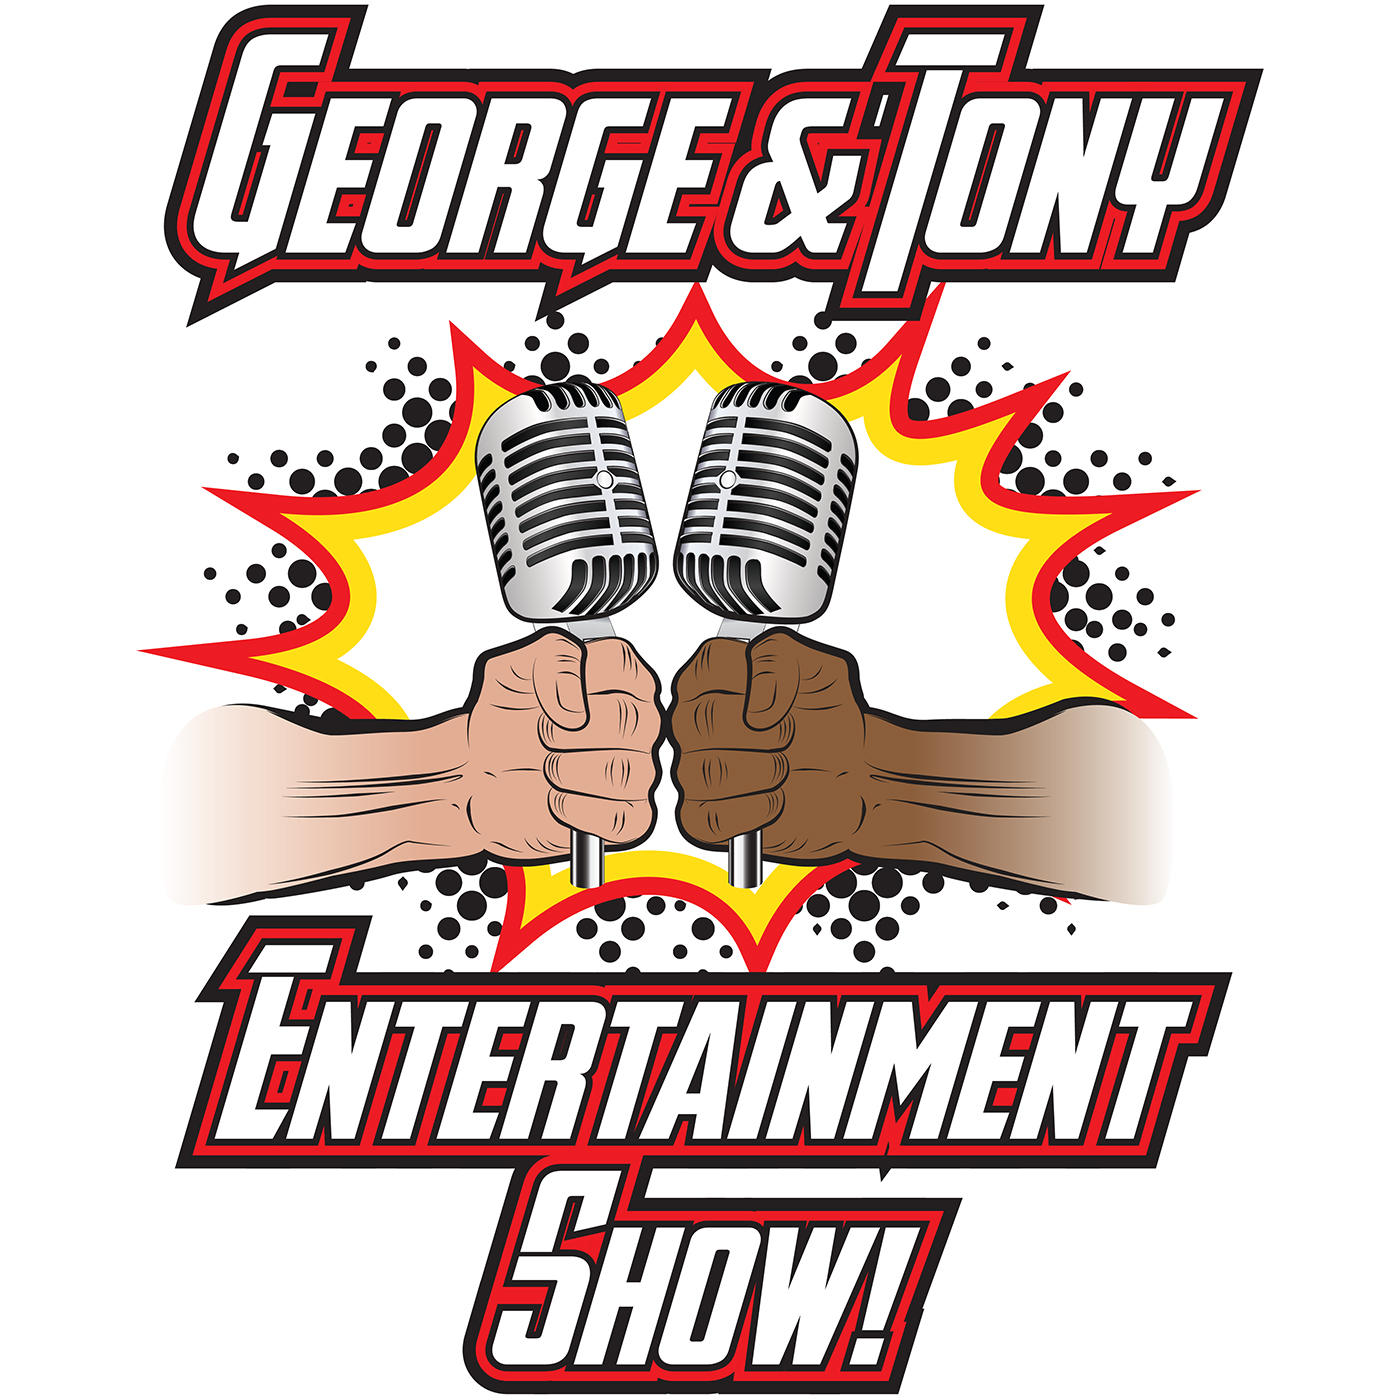 George and Tony Entertainment Show #11